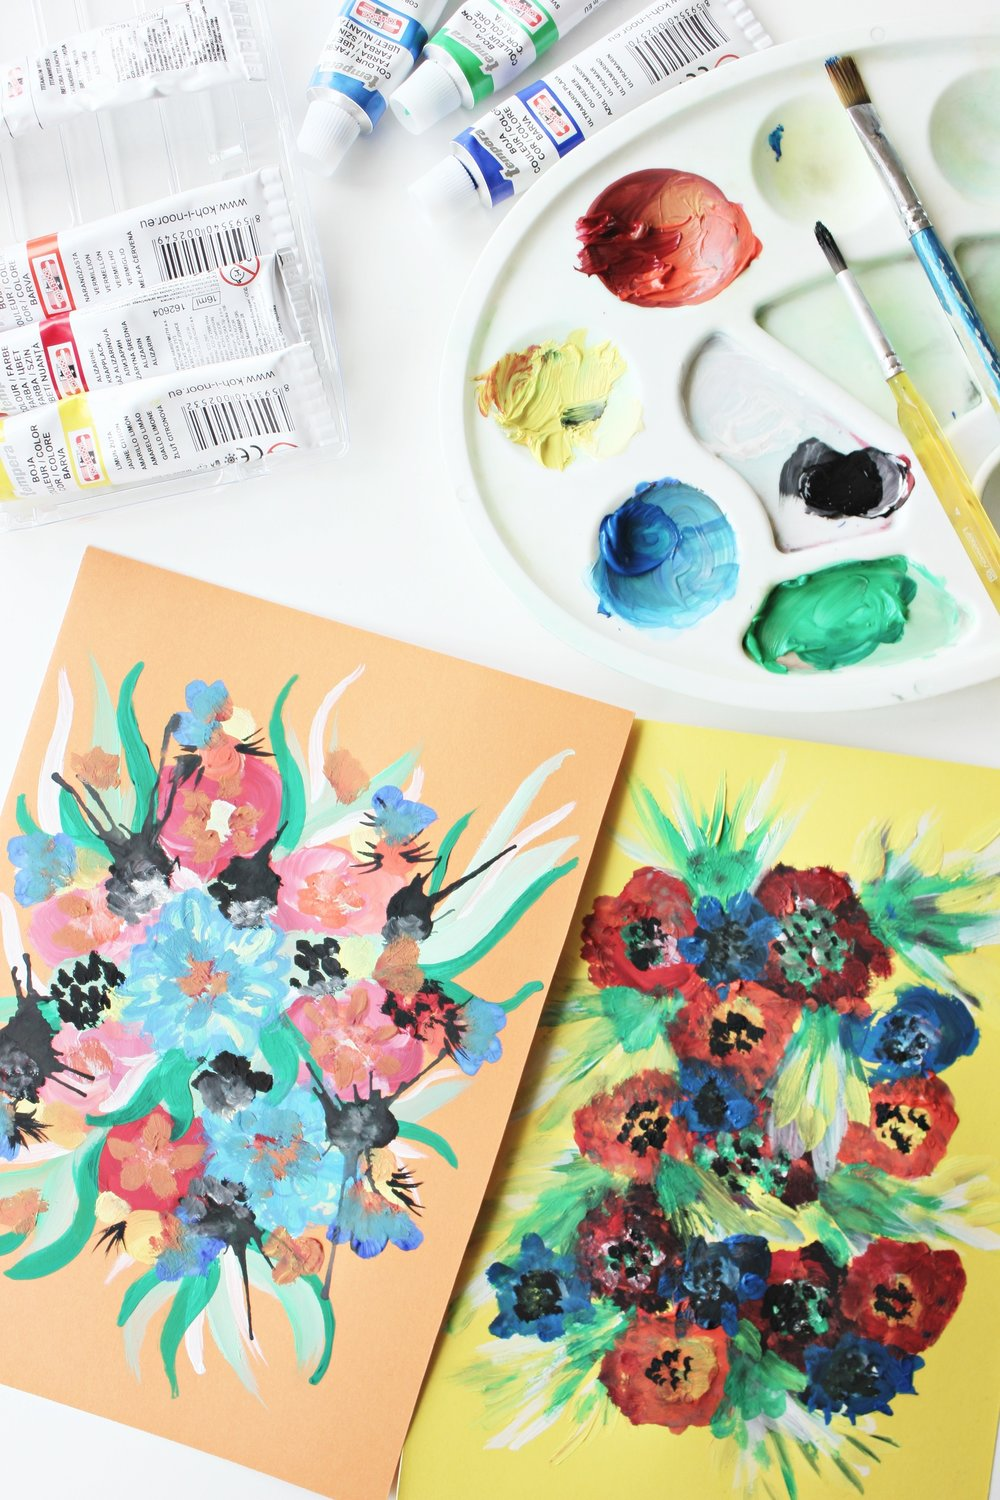 Flower painting process using tempera paints